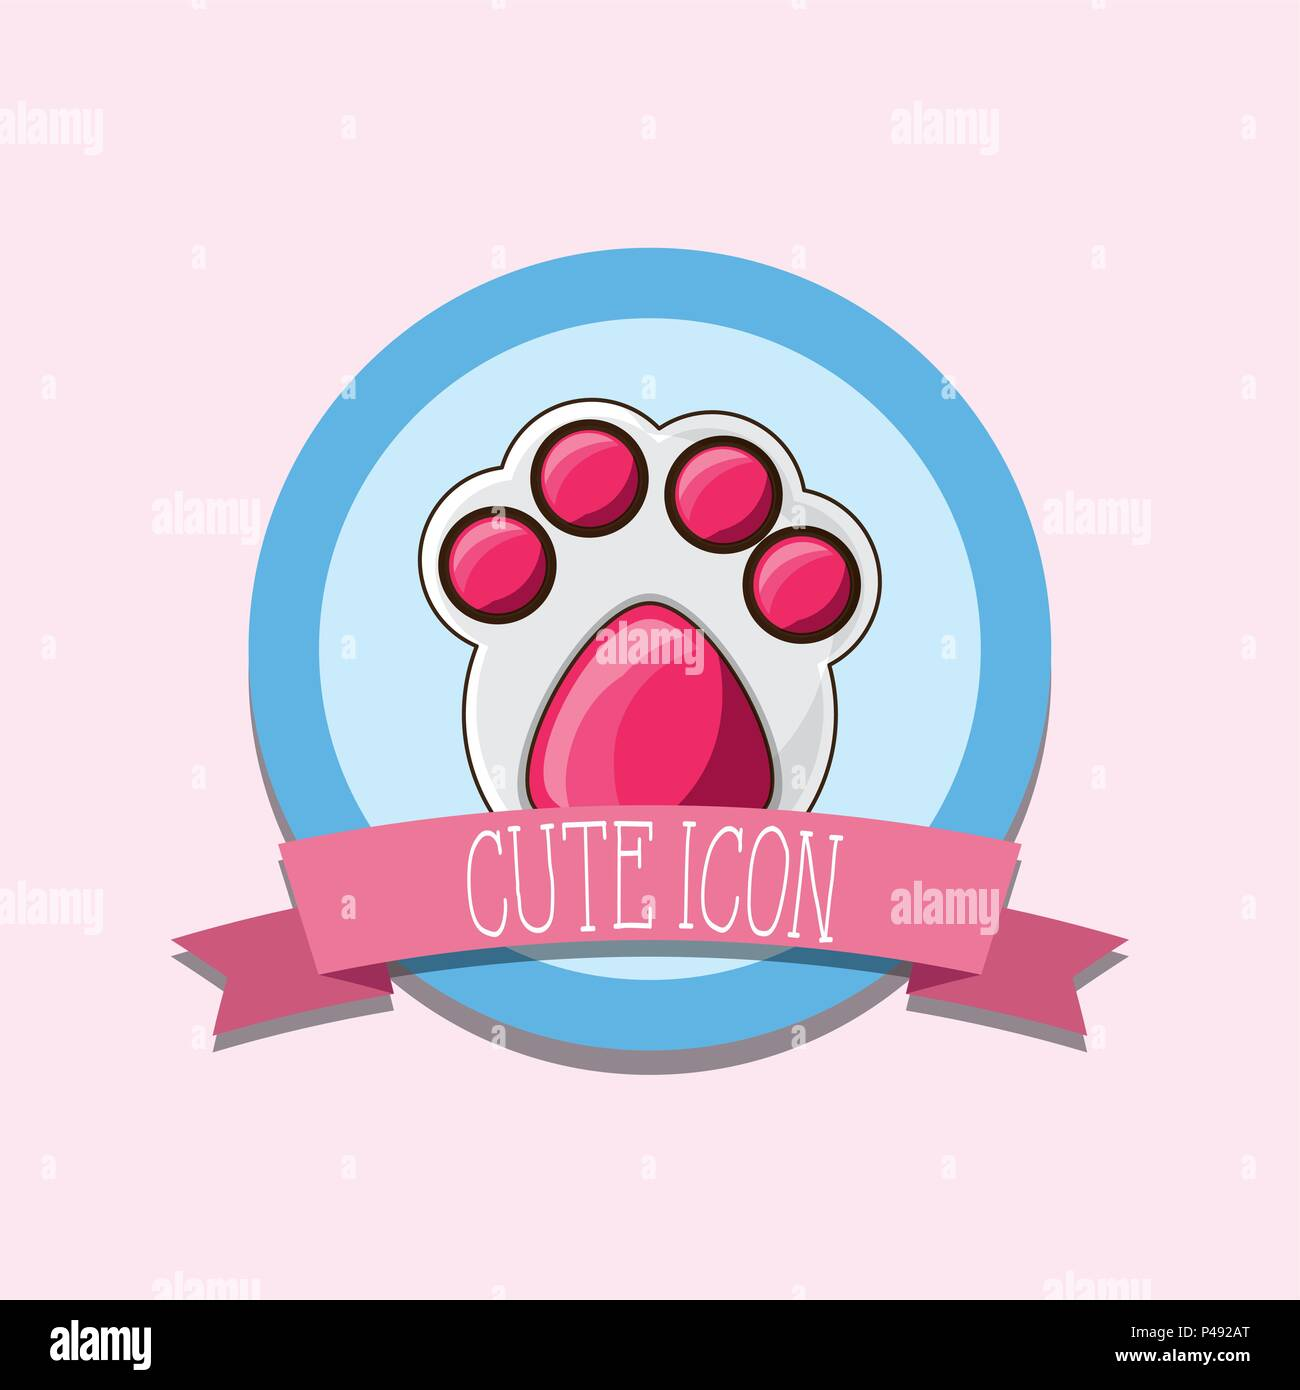 emblem with dog footprint over pink background, colorful design. vector illustration - Stock Vector